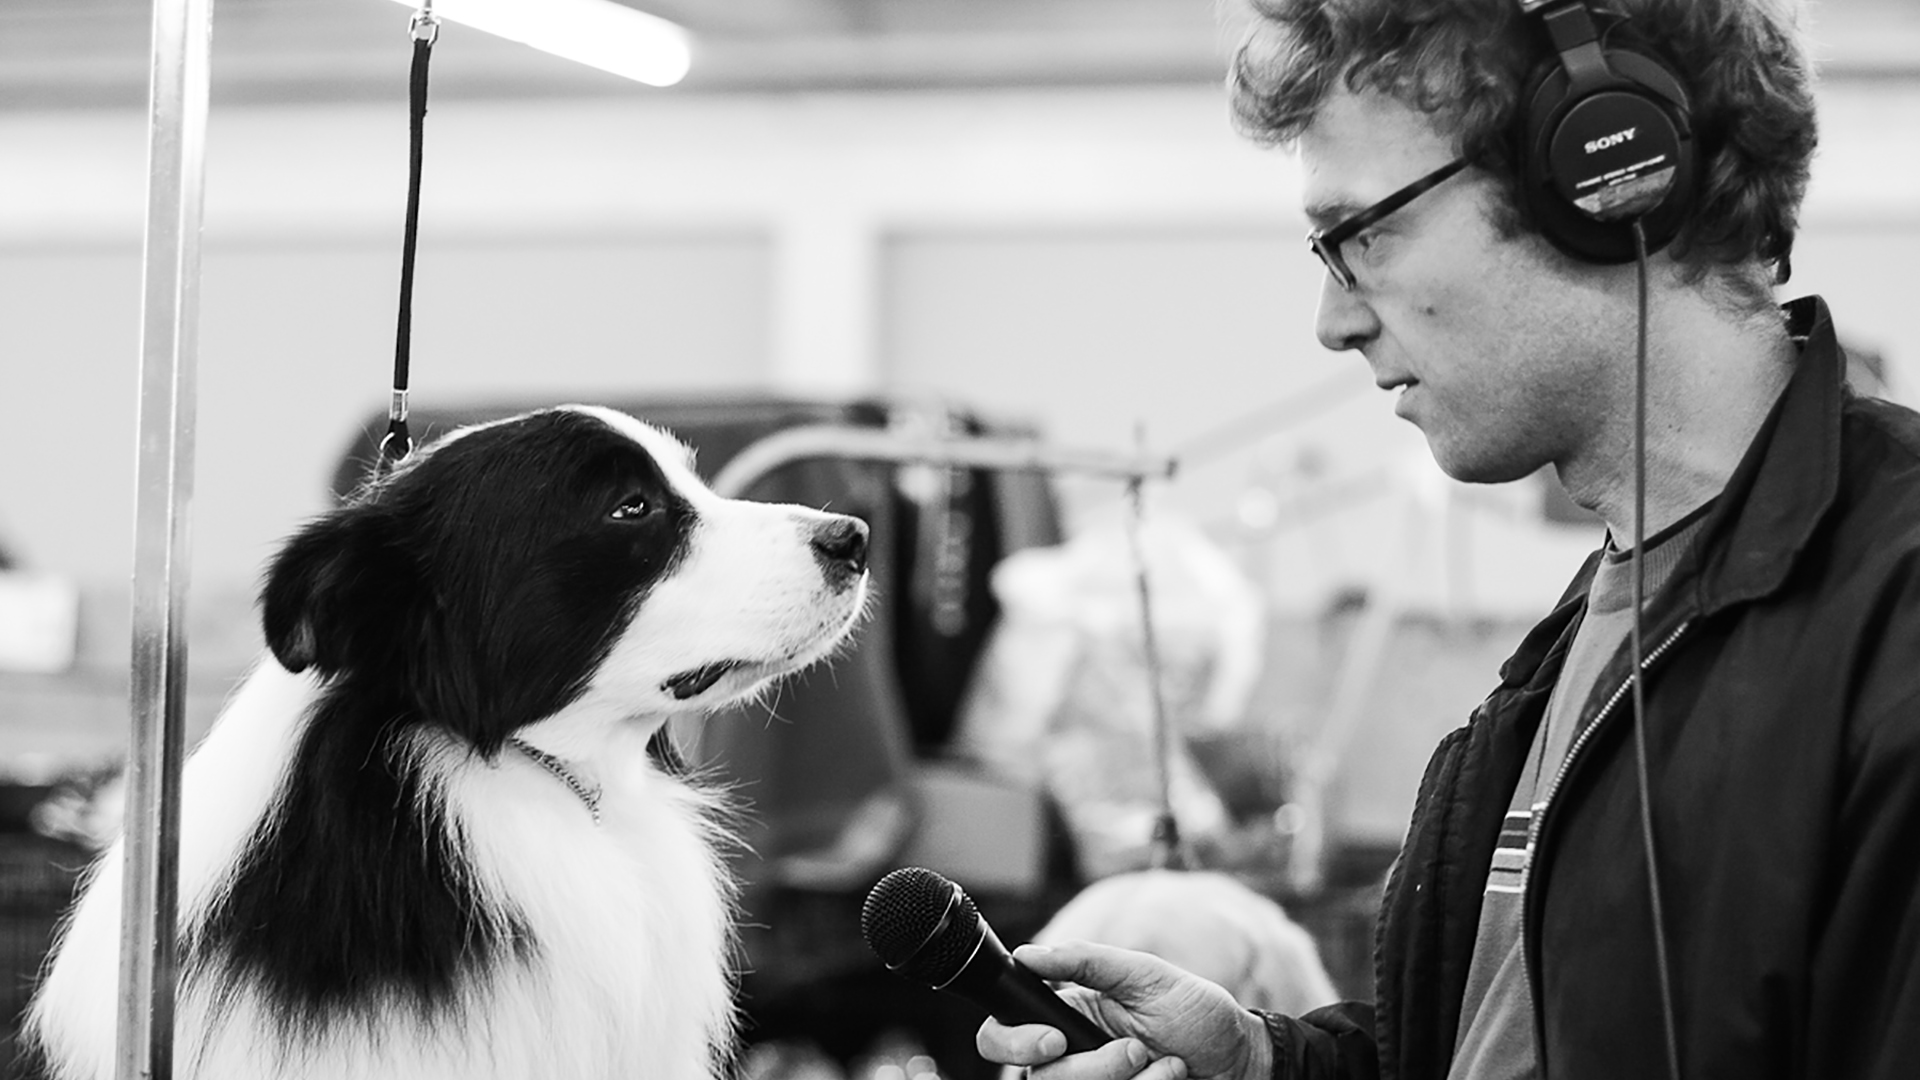 The World According to Sound's Chris Hoff interviewing a dog